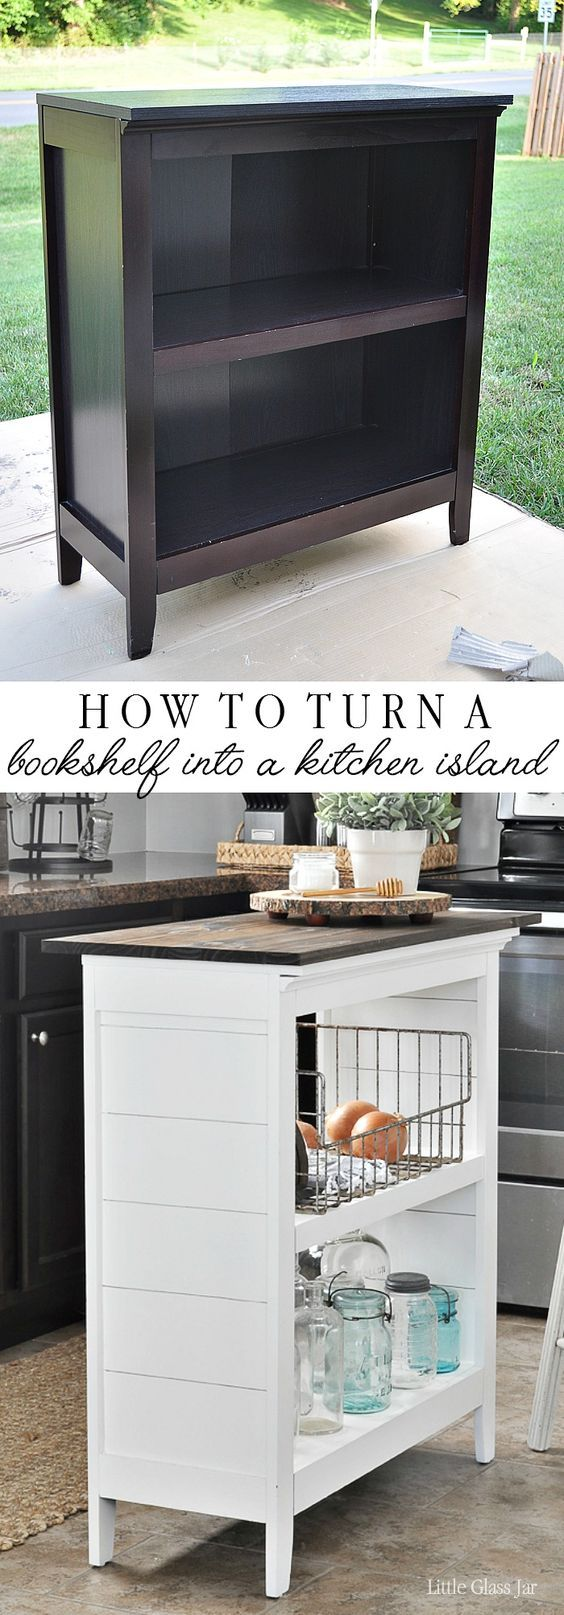 SUPER CLEVER! Turn an old bookcase into a kitchen island! Find the tutorial here: www.littleglassja...